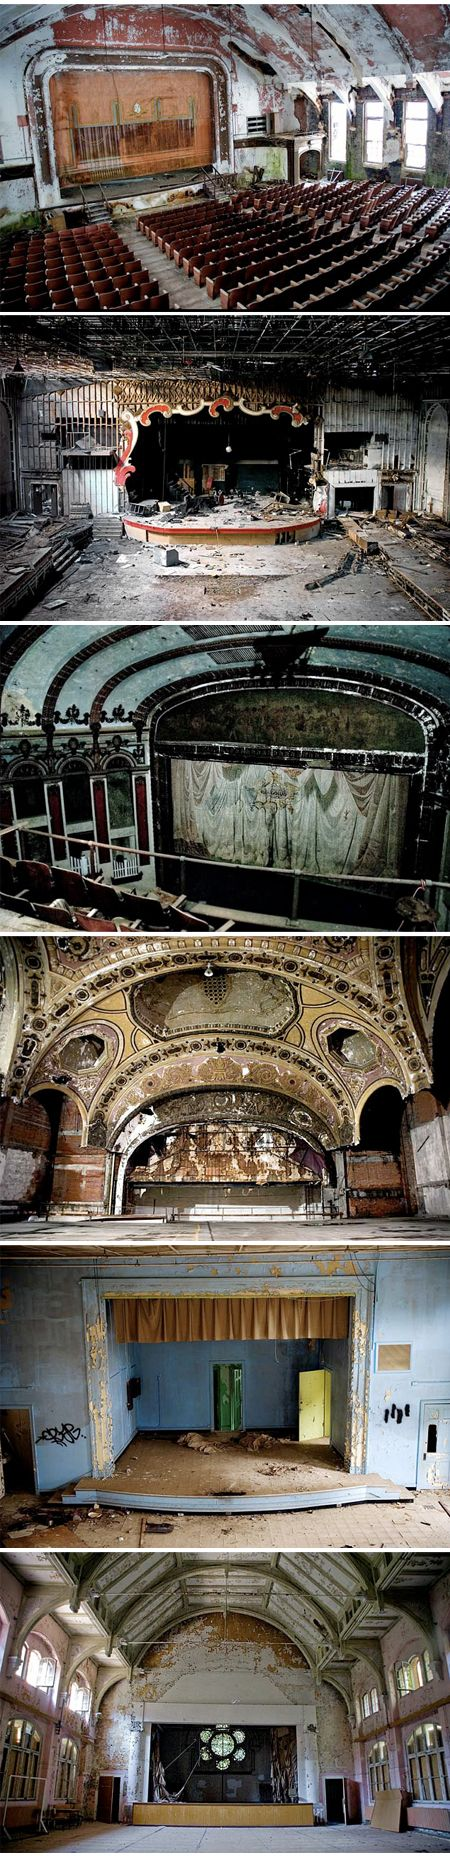 """Julia Solis explores and photographs forgotten, paint-chipped mental hospitals, ancient tunnels beneath the city streets, and the detritus left behind after institutions fall into disrepair and become obsolete. She took these photos of abandoned theaters — a series aptly titled """"Stages of Decay""""."""